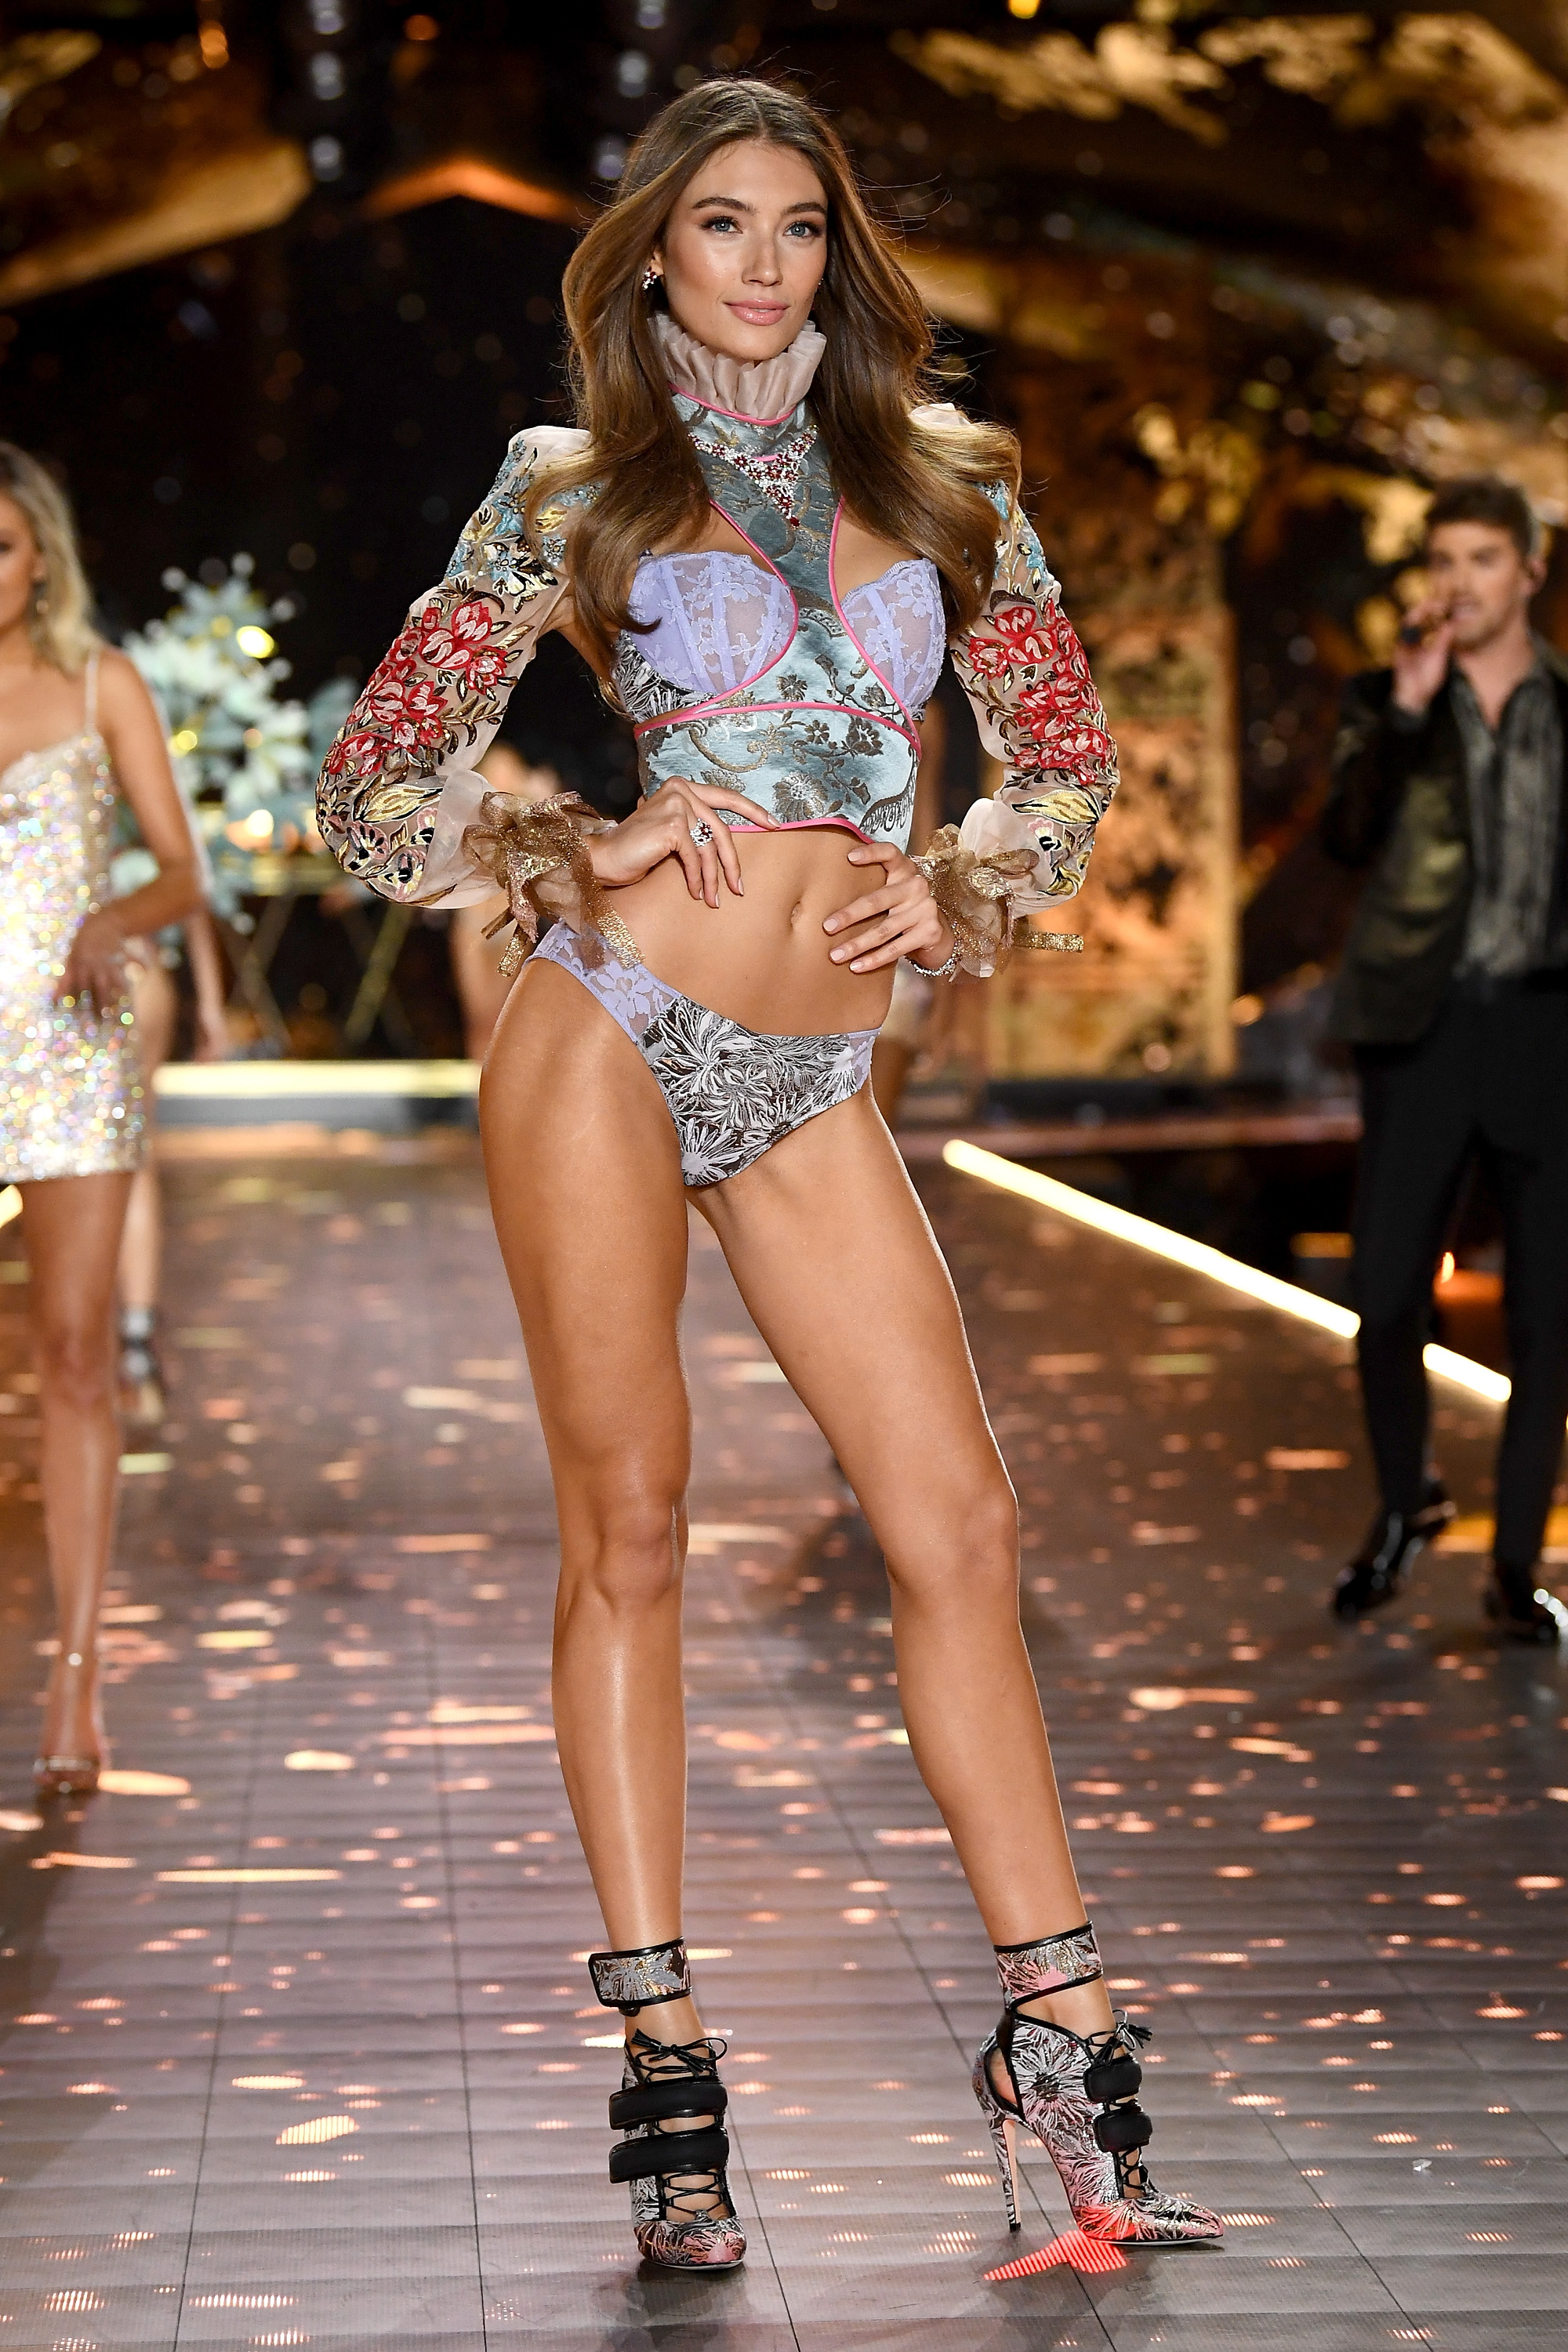 Lorena Rae walks the runway during the 2018 Victoria's Secret Fashion Show at Pier 94 on November 8, 2018, in New York City. (Getty Images)